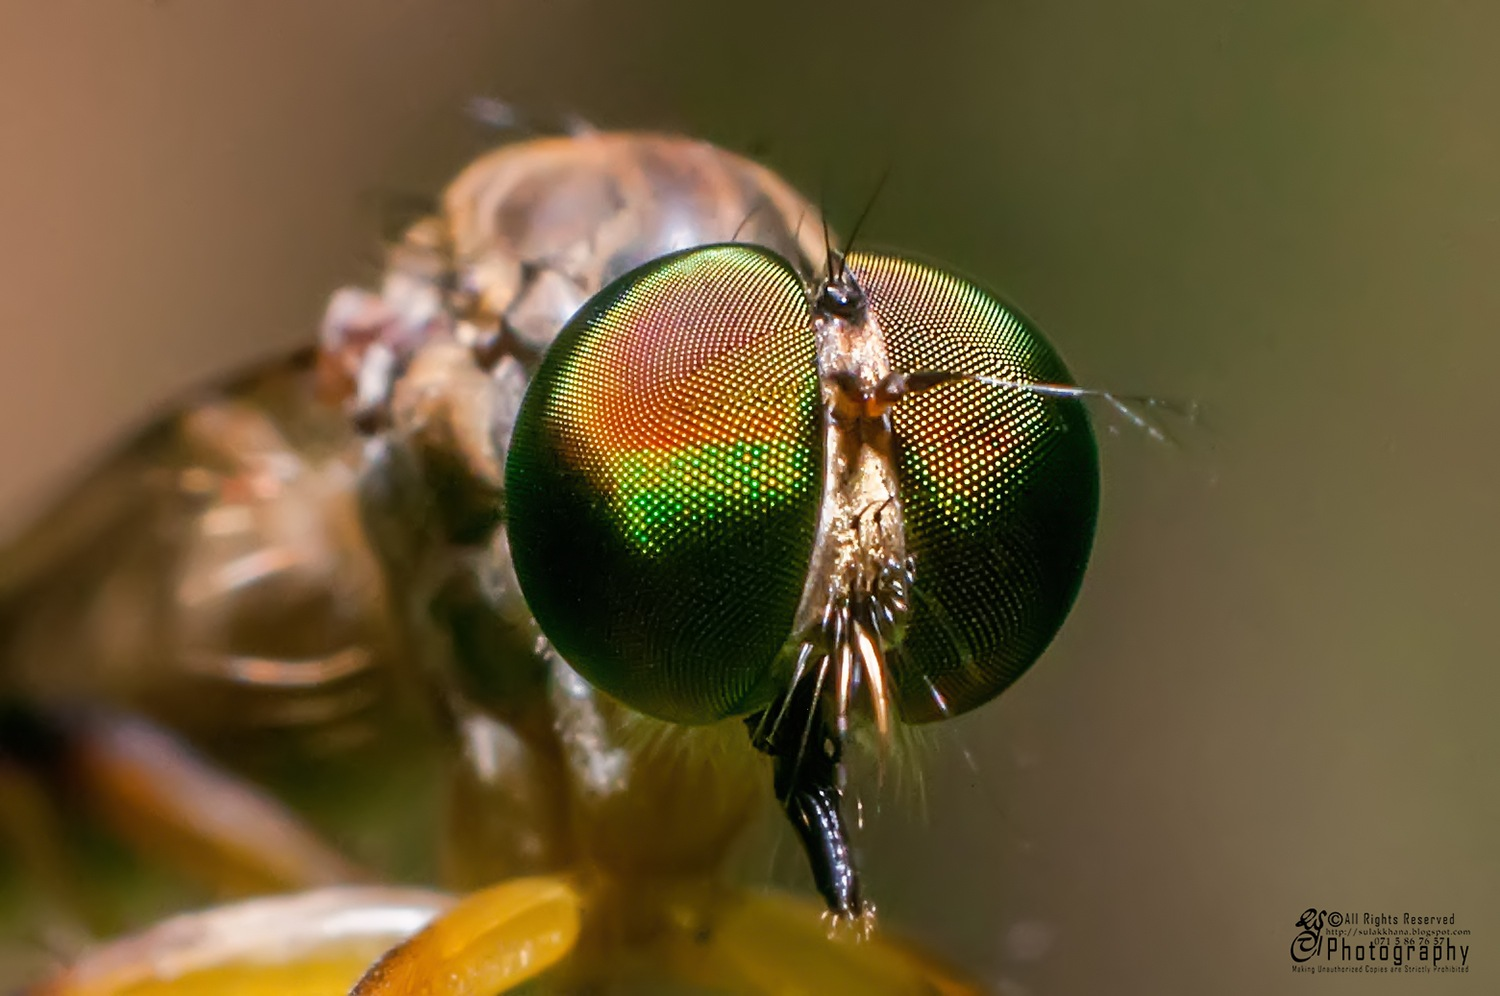 Compound Eye of a Robber Fly by Sulakkhana Chamara